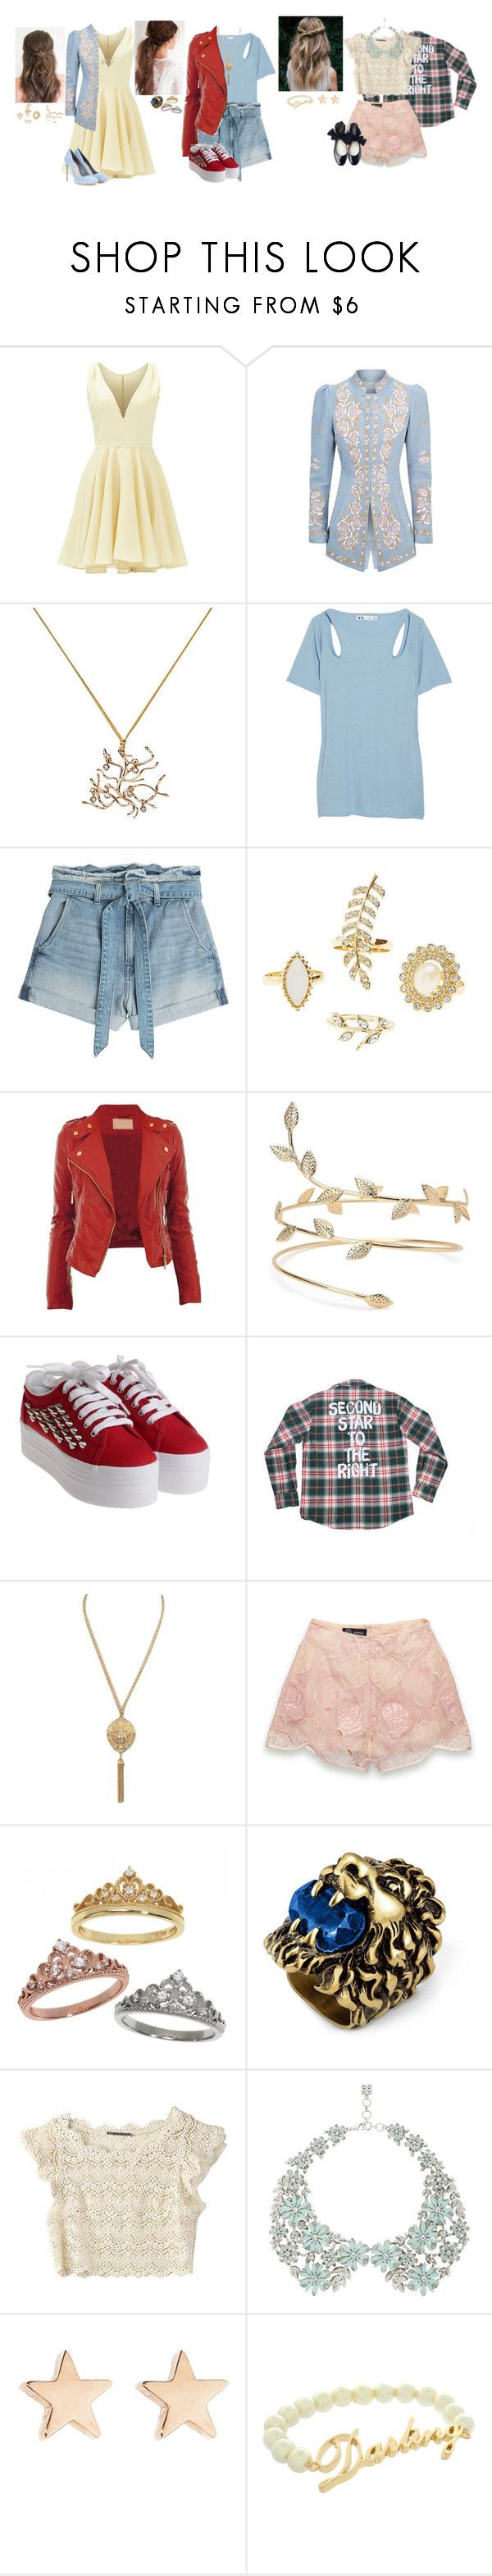 """Addie, Jamie, Wendy Jr ( VKs' first day of school)"" by sophie-lightwood-bane ❤ liked on Polyvore featuring Allison Parris, Andrew Gn, Miu Miu, Y-3, 7 For All Mankind, Charlotte Russe, Jeffrey Campbell, Sretsis, Eternally Haute and Gucci"